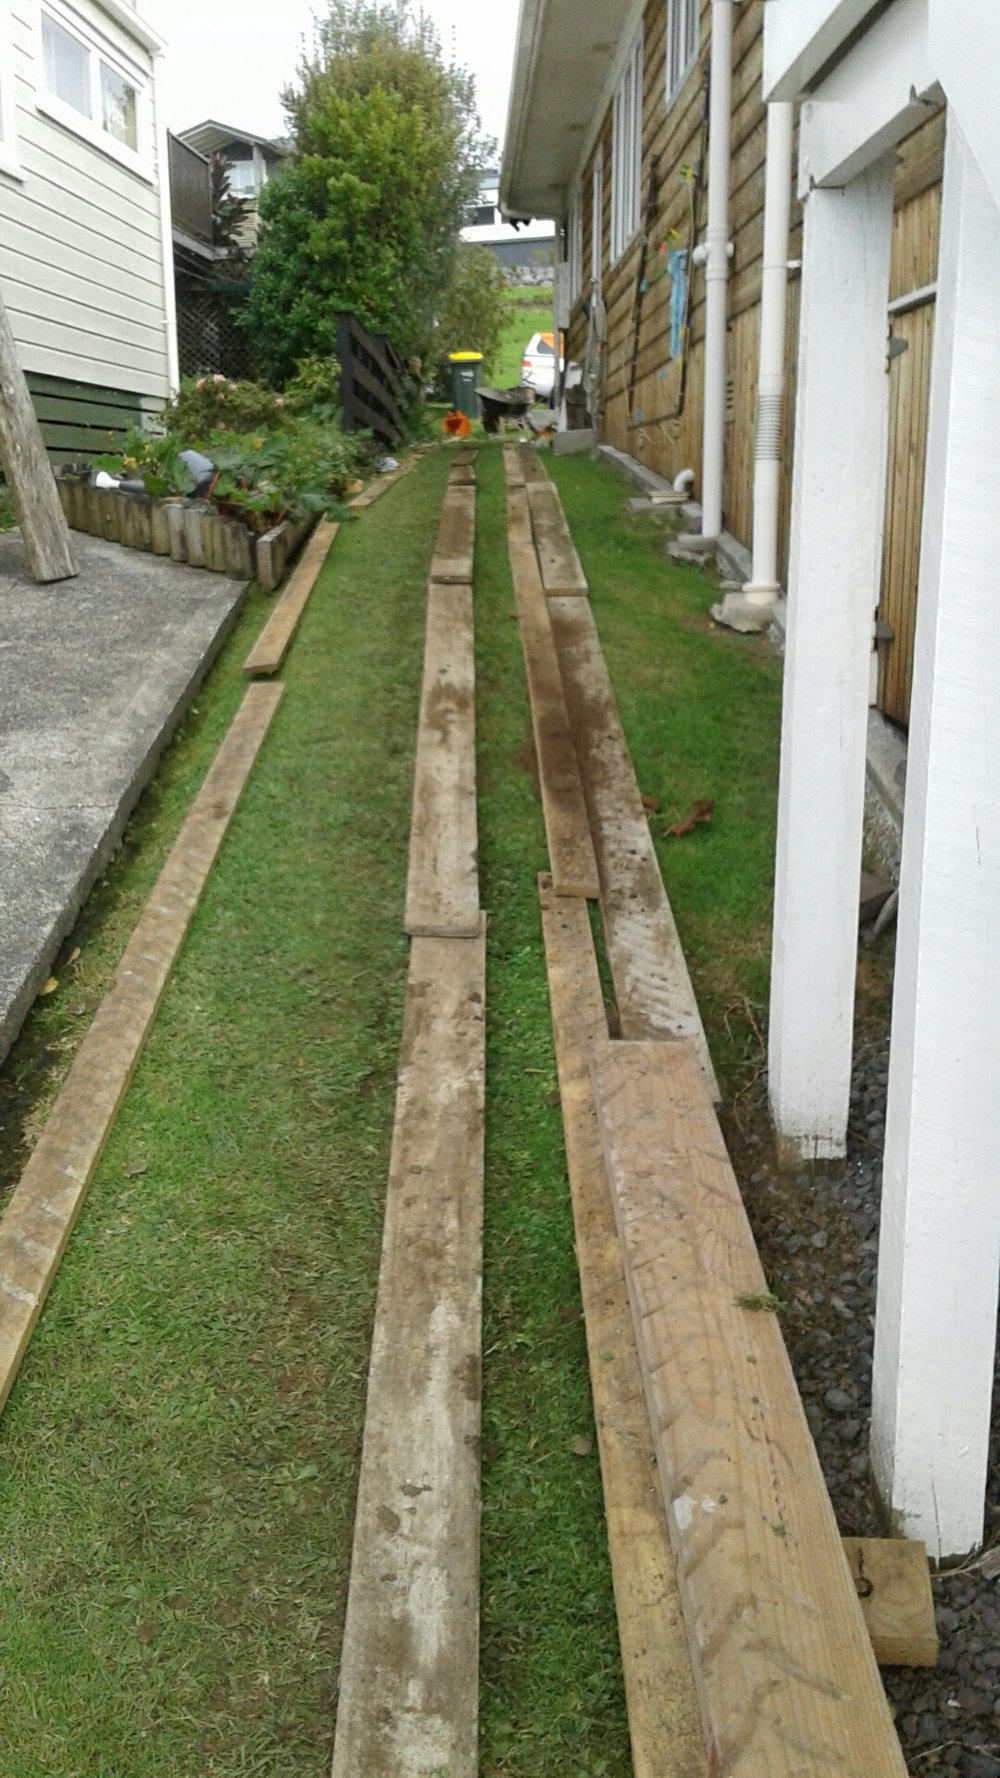 Using planks to access and protect the customer's property